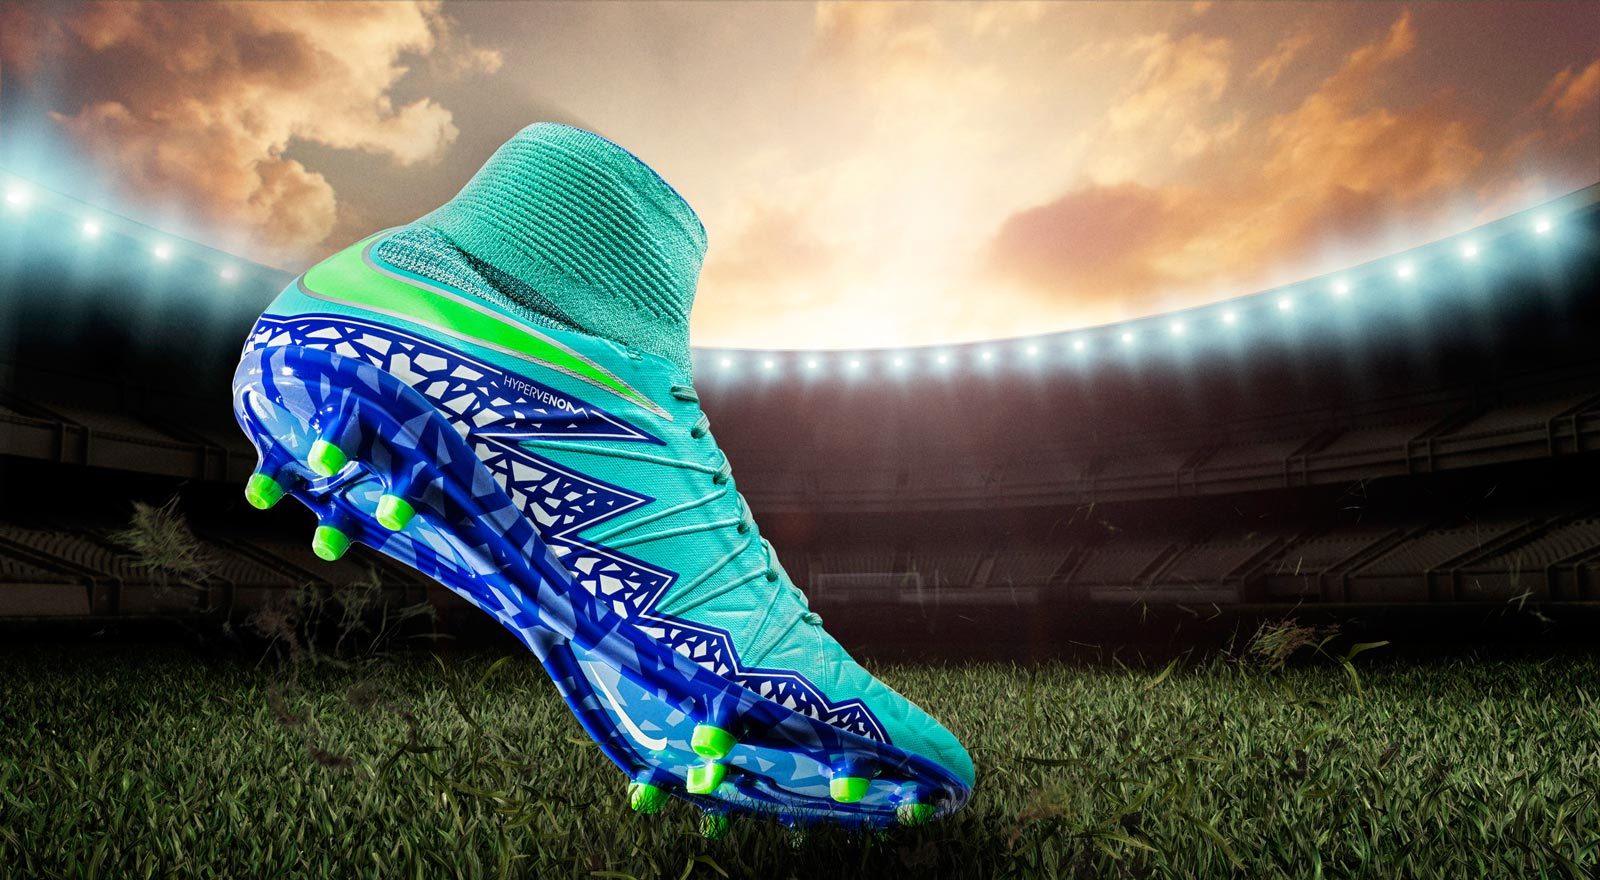 Simple Soccer Boots 2012, Soccer Boots Review, Soccer Boots For Sale, Adidas Soccer Boots, Nike Soccer Boots, Soccer Boots Wiki, Best Soccer Boots, Cheap Soccer Boots, The Worlds Largest Online Football Store For Football Boots, Football